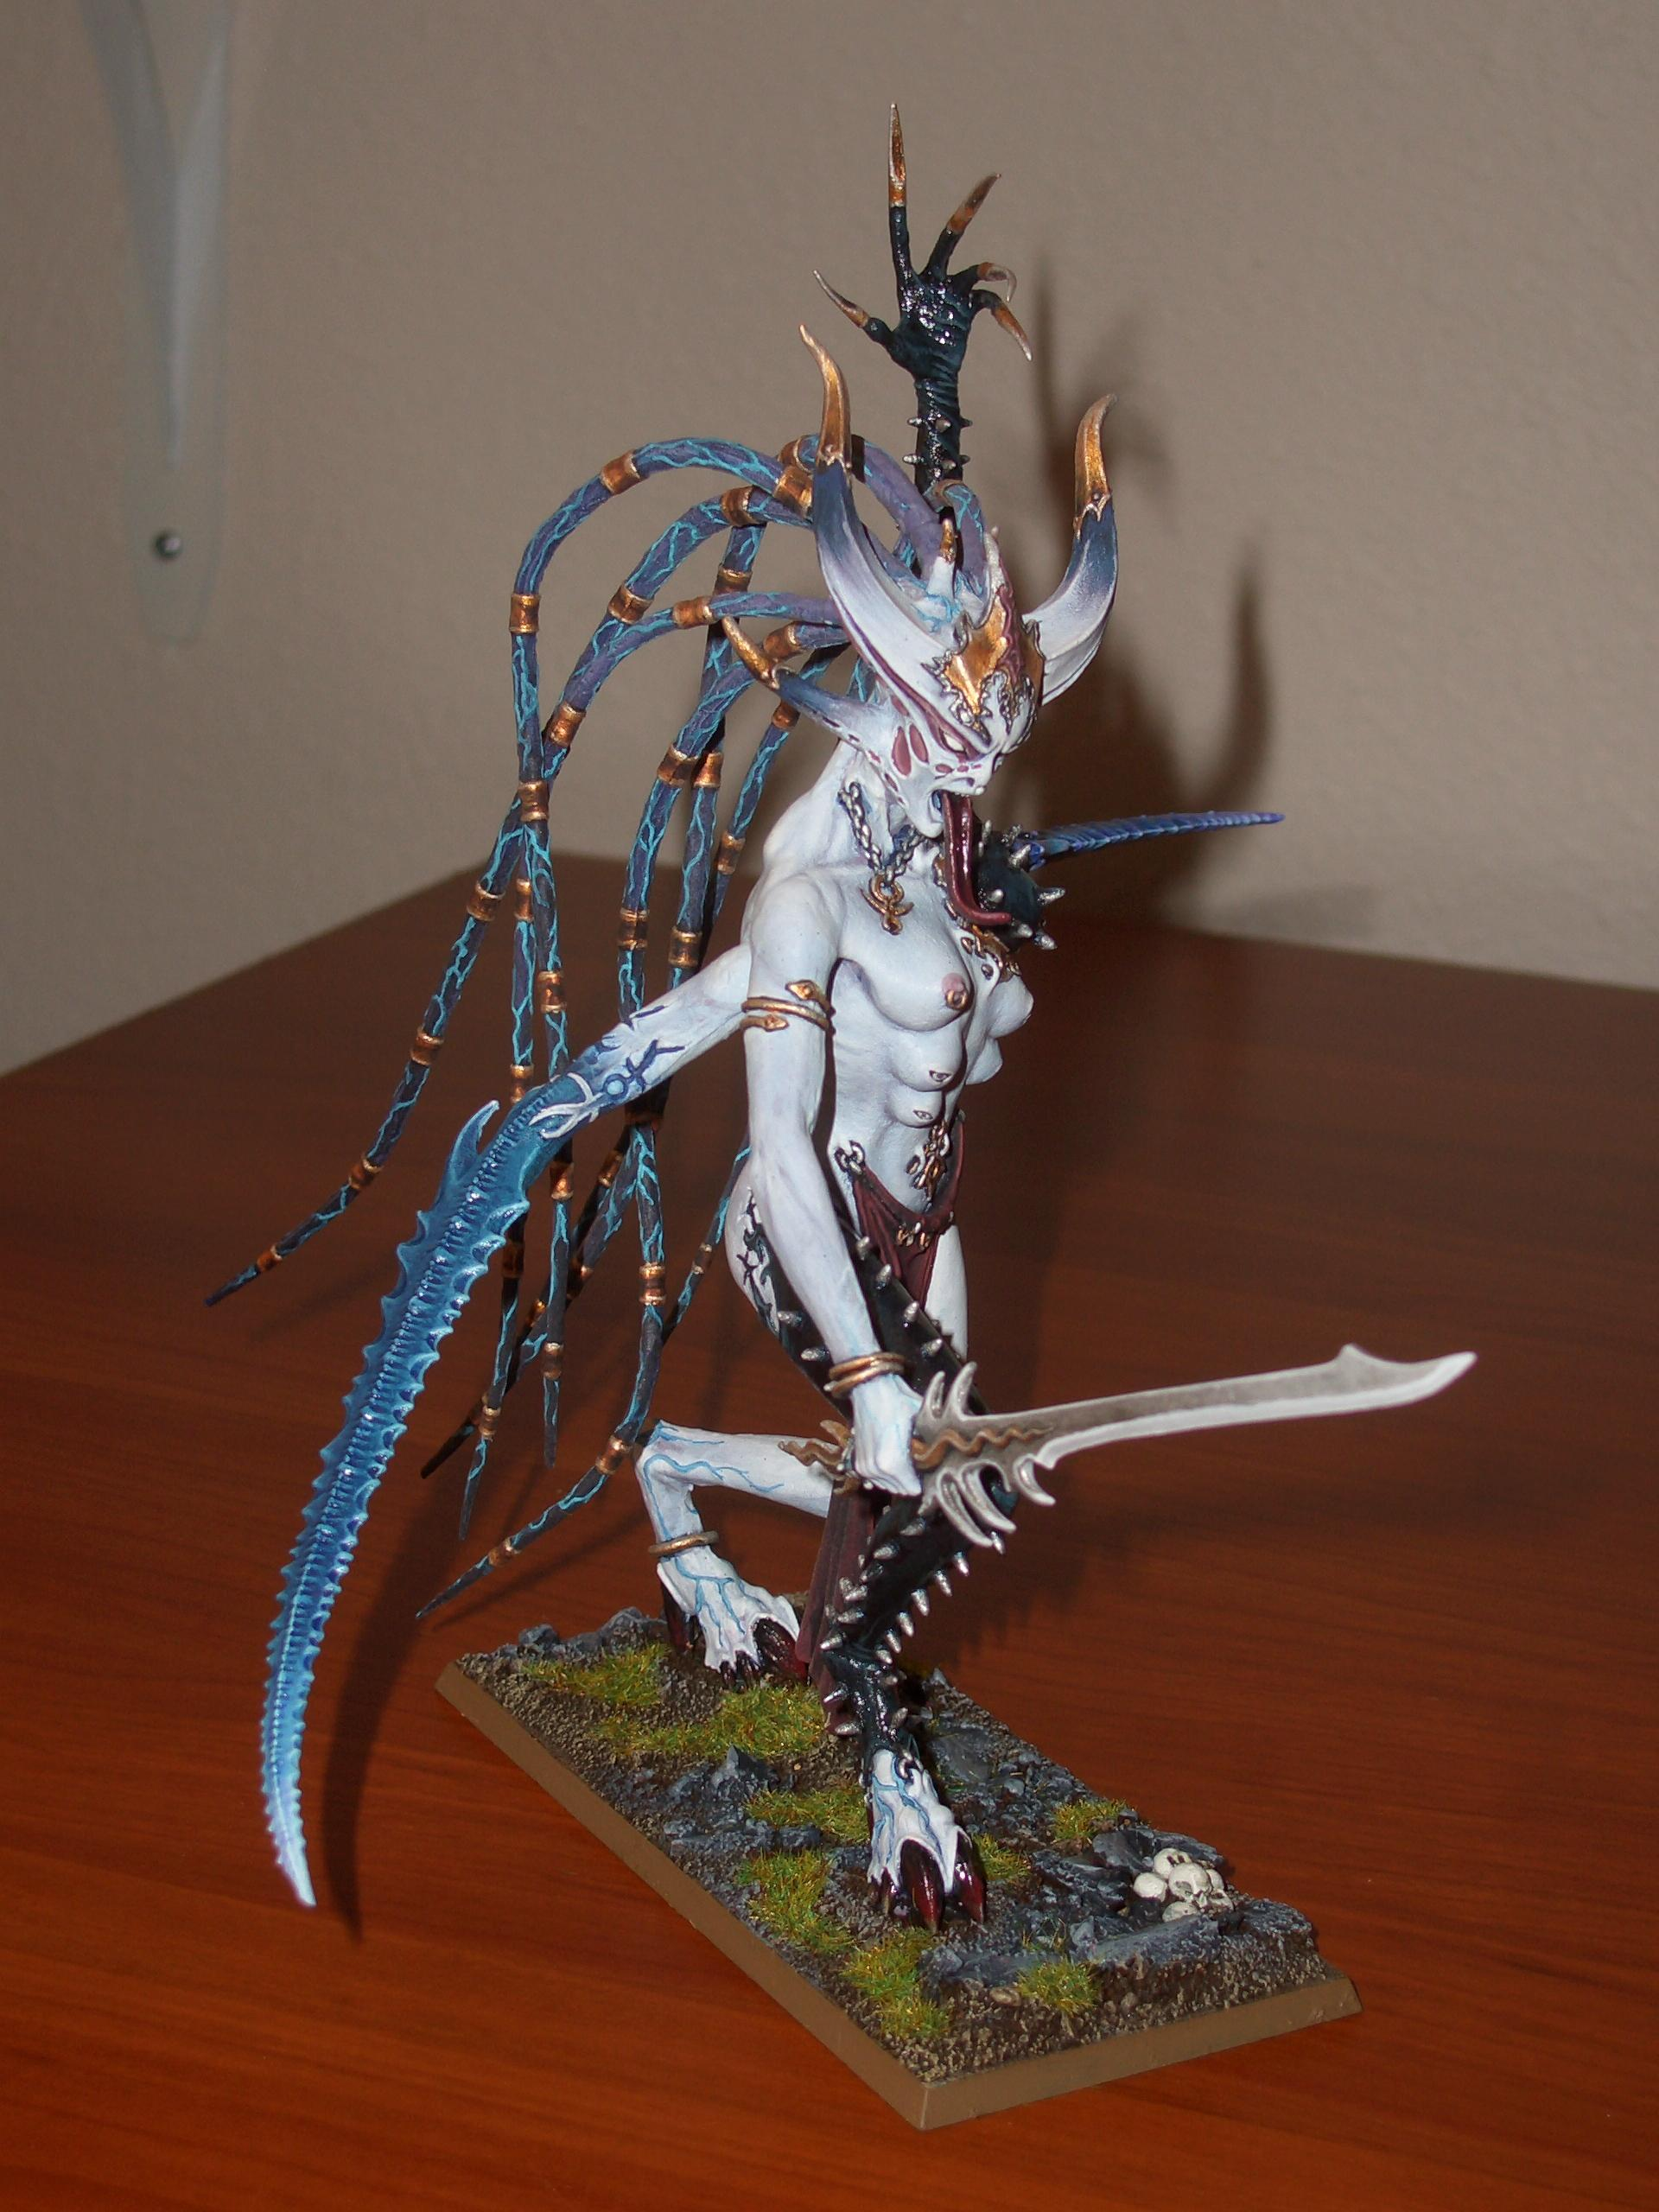 Chaos, Chaos Daemons, Daemons, Forge World, Keeper Of Secrets, Slaanesh, Warhammer Fantasy